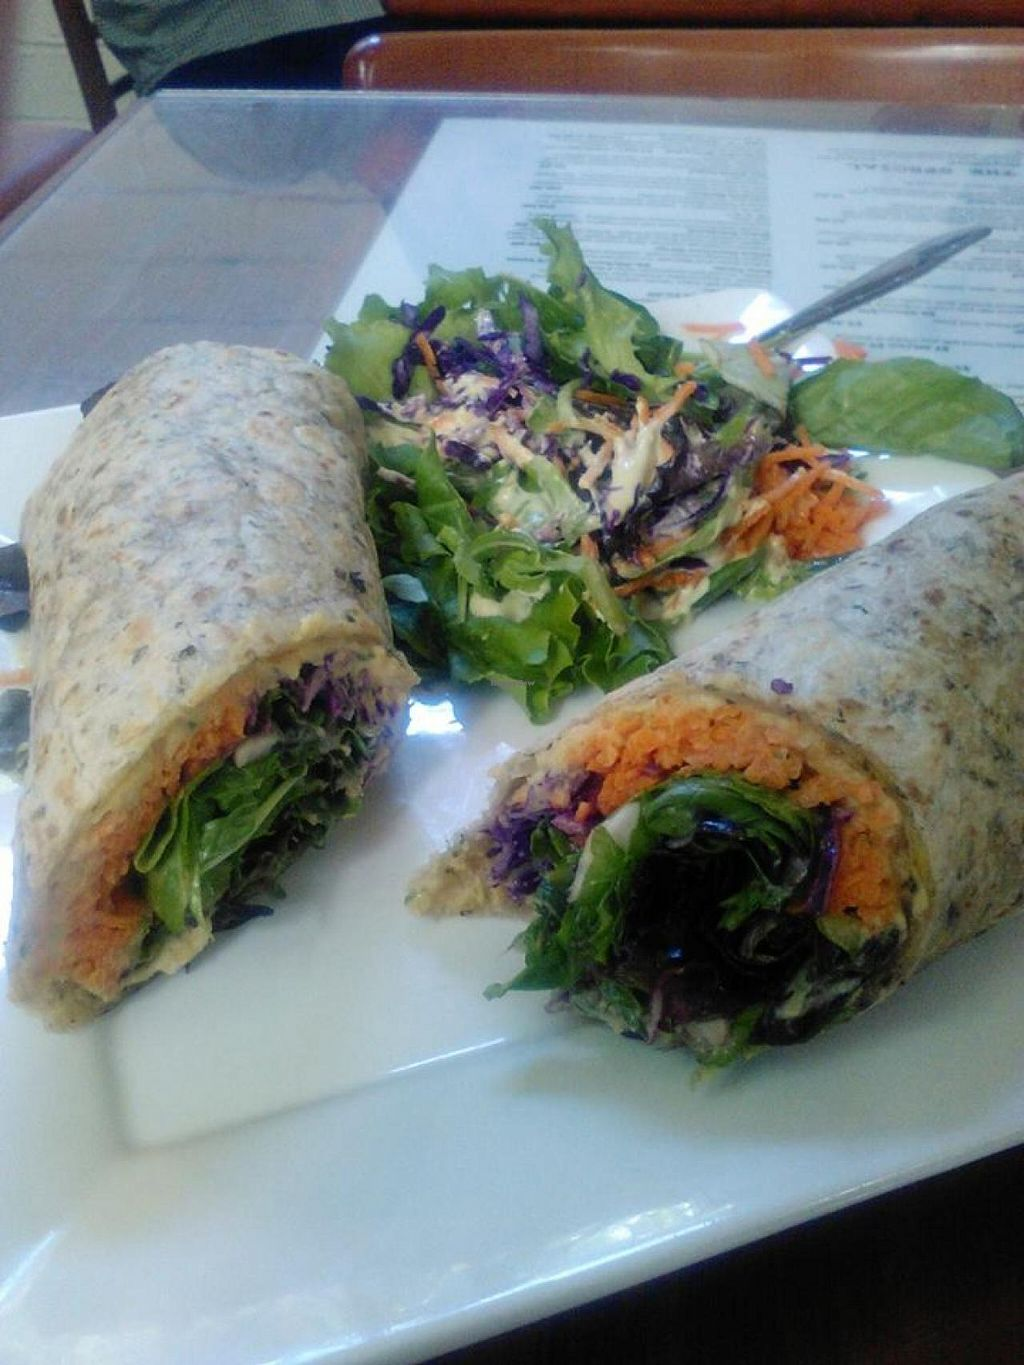 """Photo of Shine Cafe  by <a href=""""/members/profile/KristinNirvana"""">KristinNirvana</a> <br/>Shine Hummus Wrap <br/> July 25, 2015  - <a href='/contact/abuse/image/4023/110973'>Report</a>"""